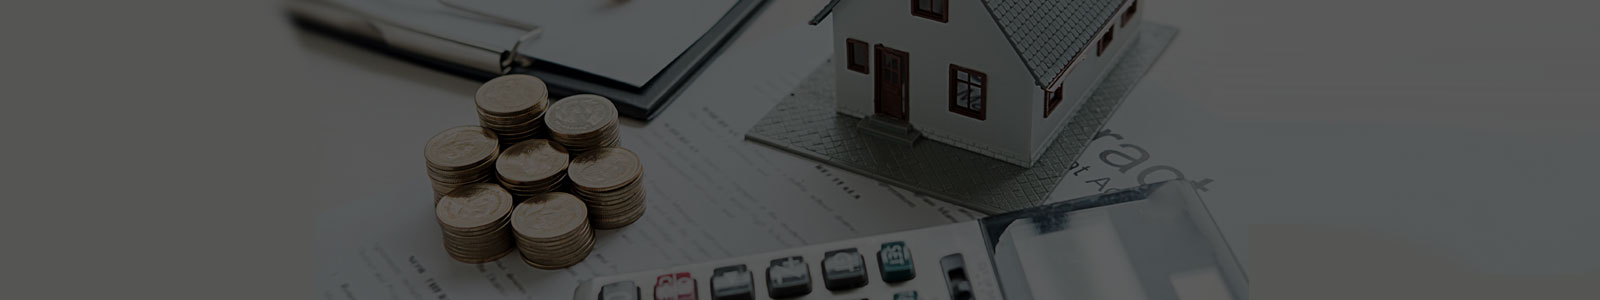 Outsourcing Real Estate Accounts Receivable Services